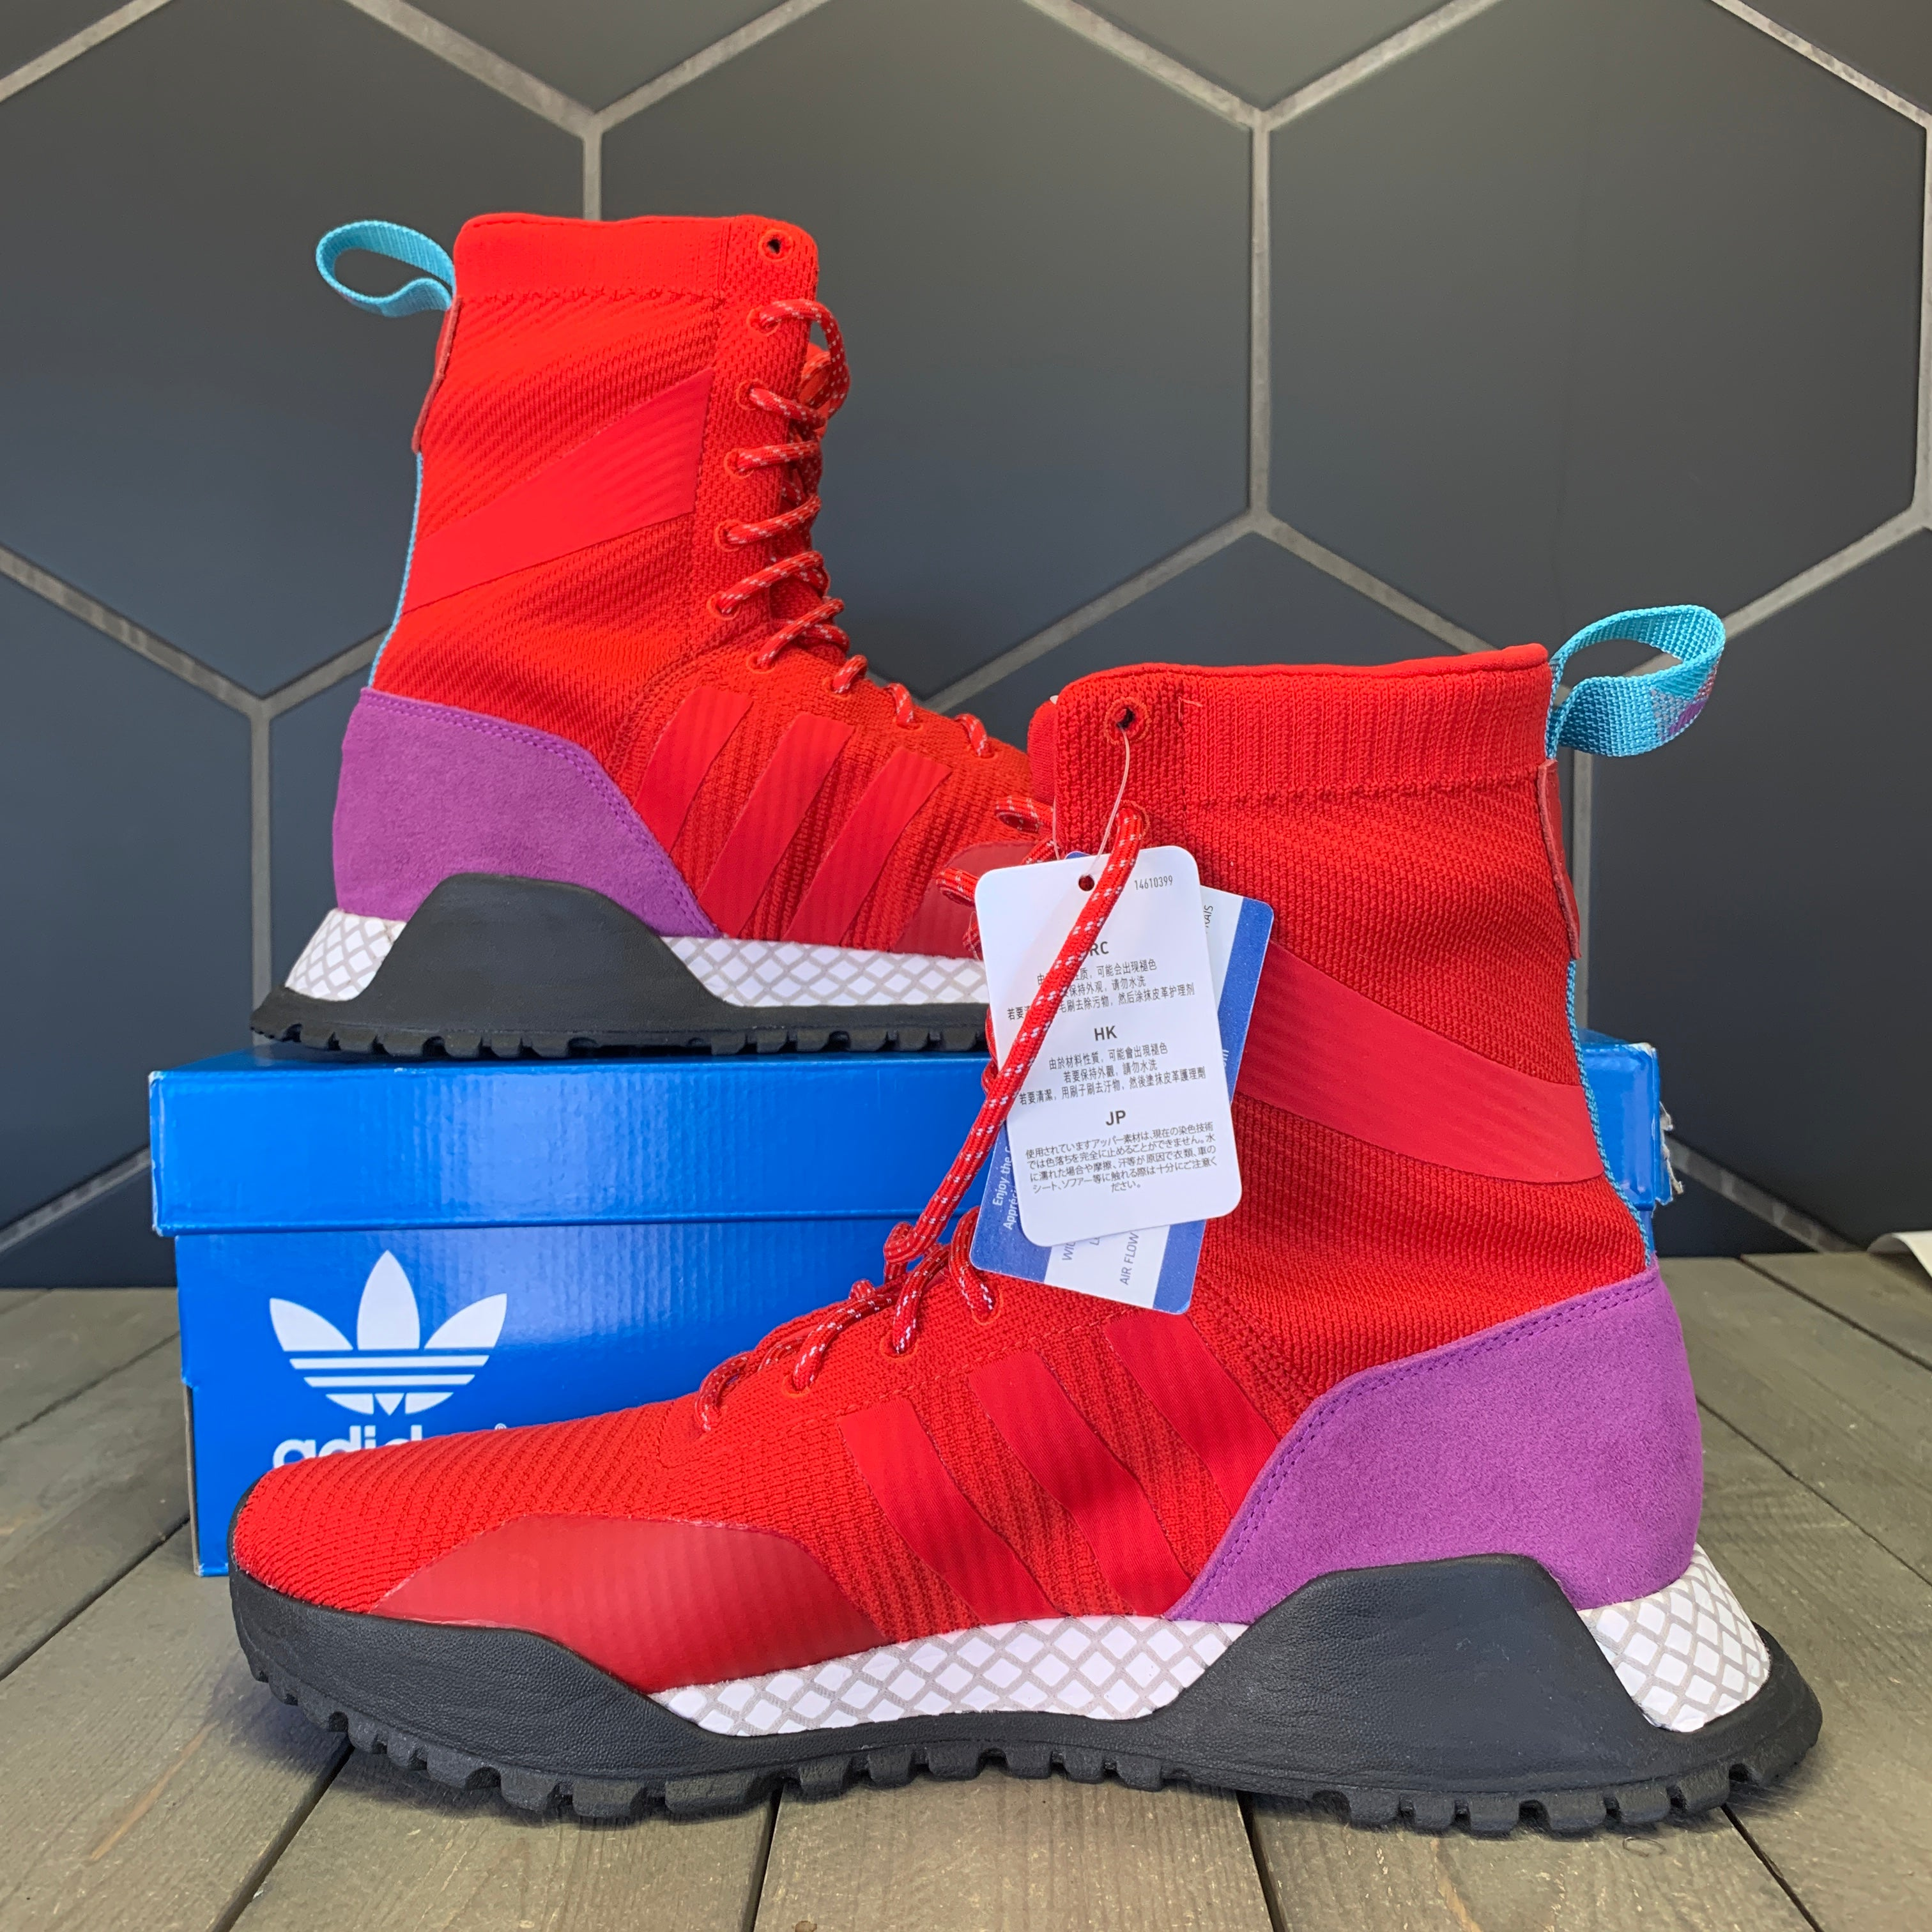 New W/ Box! Adidas F/1.3 PK Scarlet Purple Boots (Multiple Sizes)